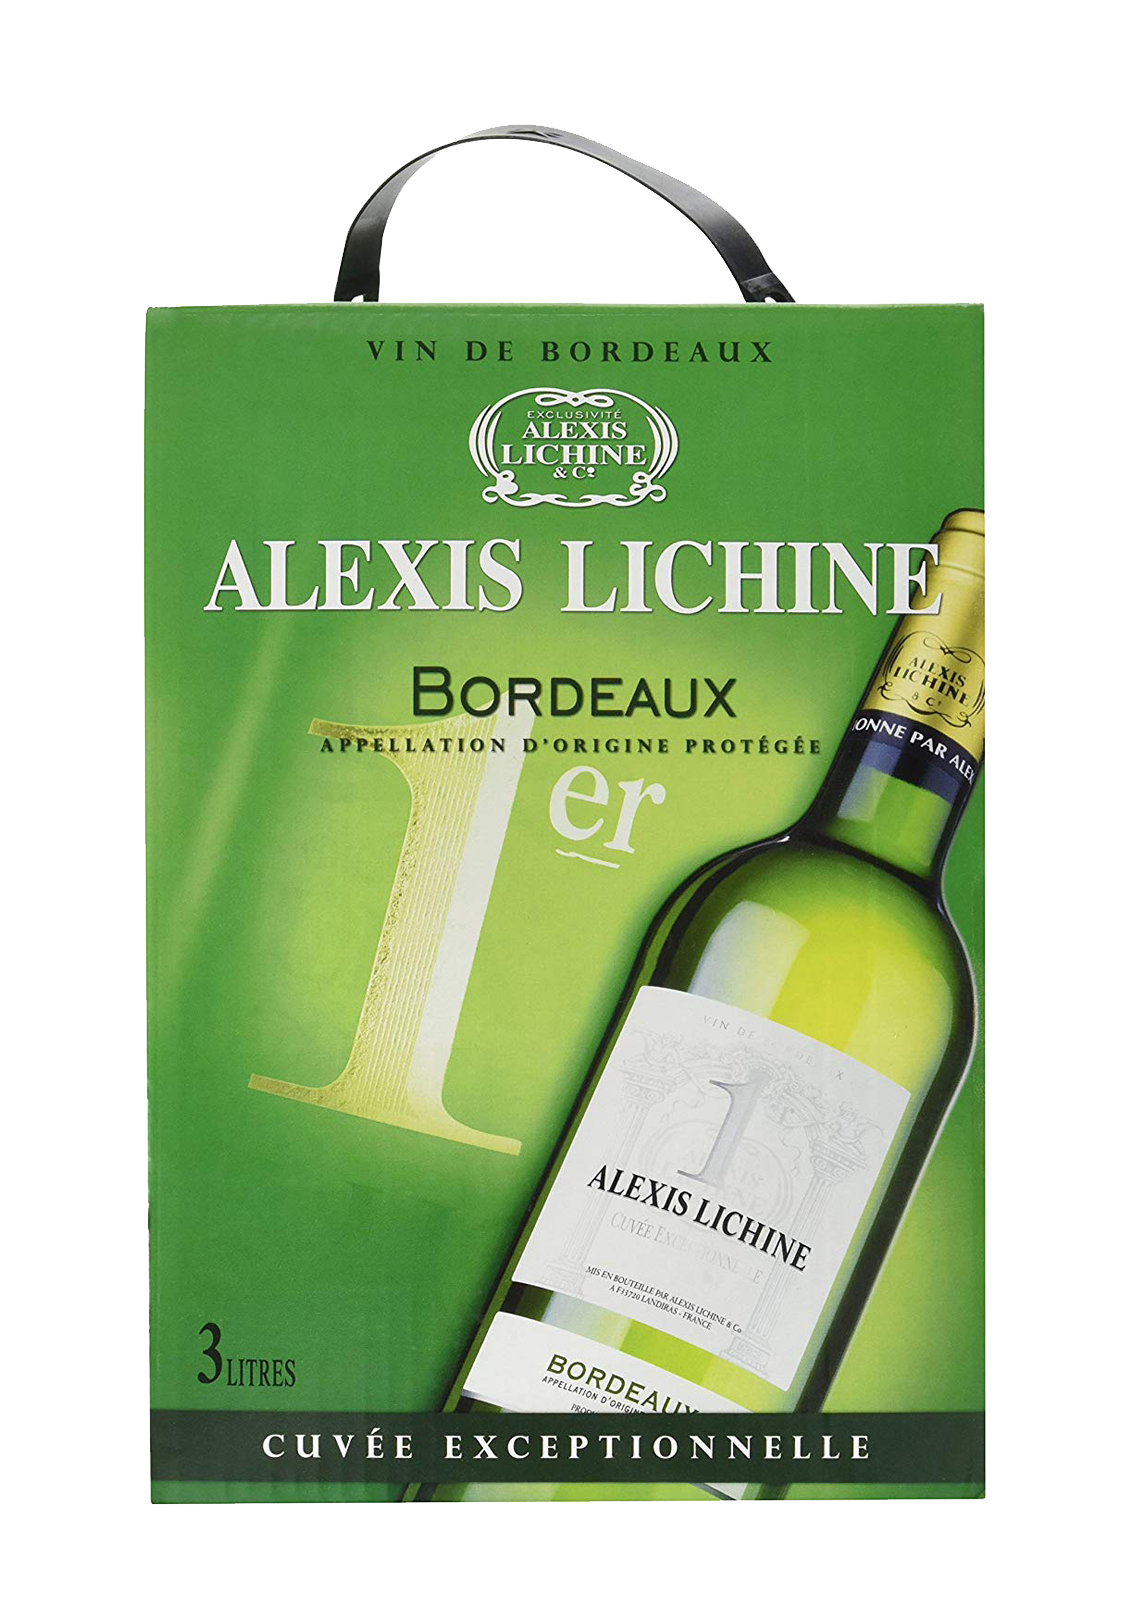 ALIXIS LICHINE AOP BORDEAUX WHITE 3LT